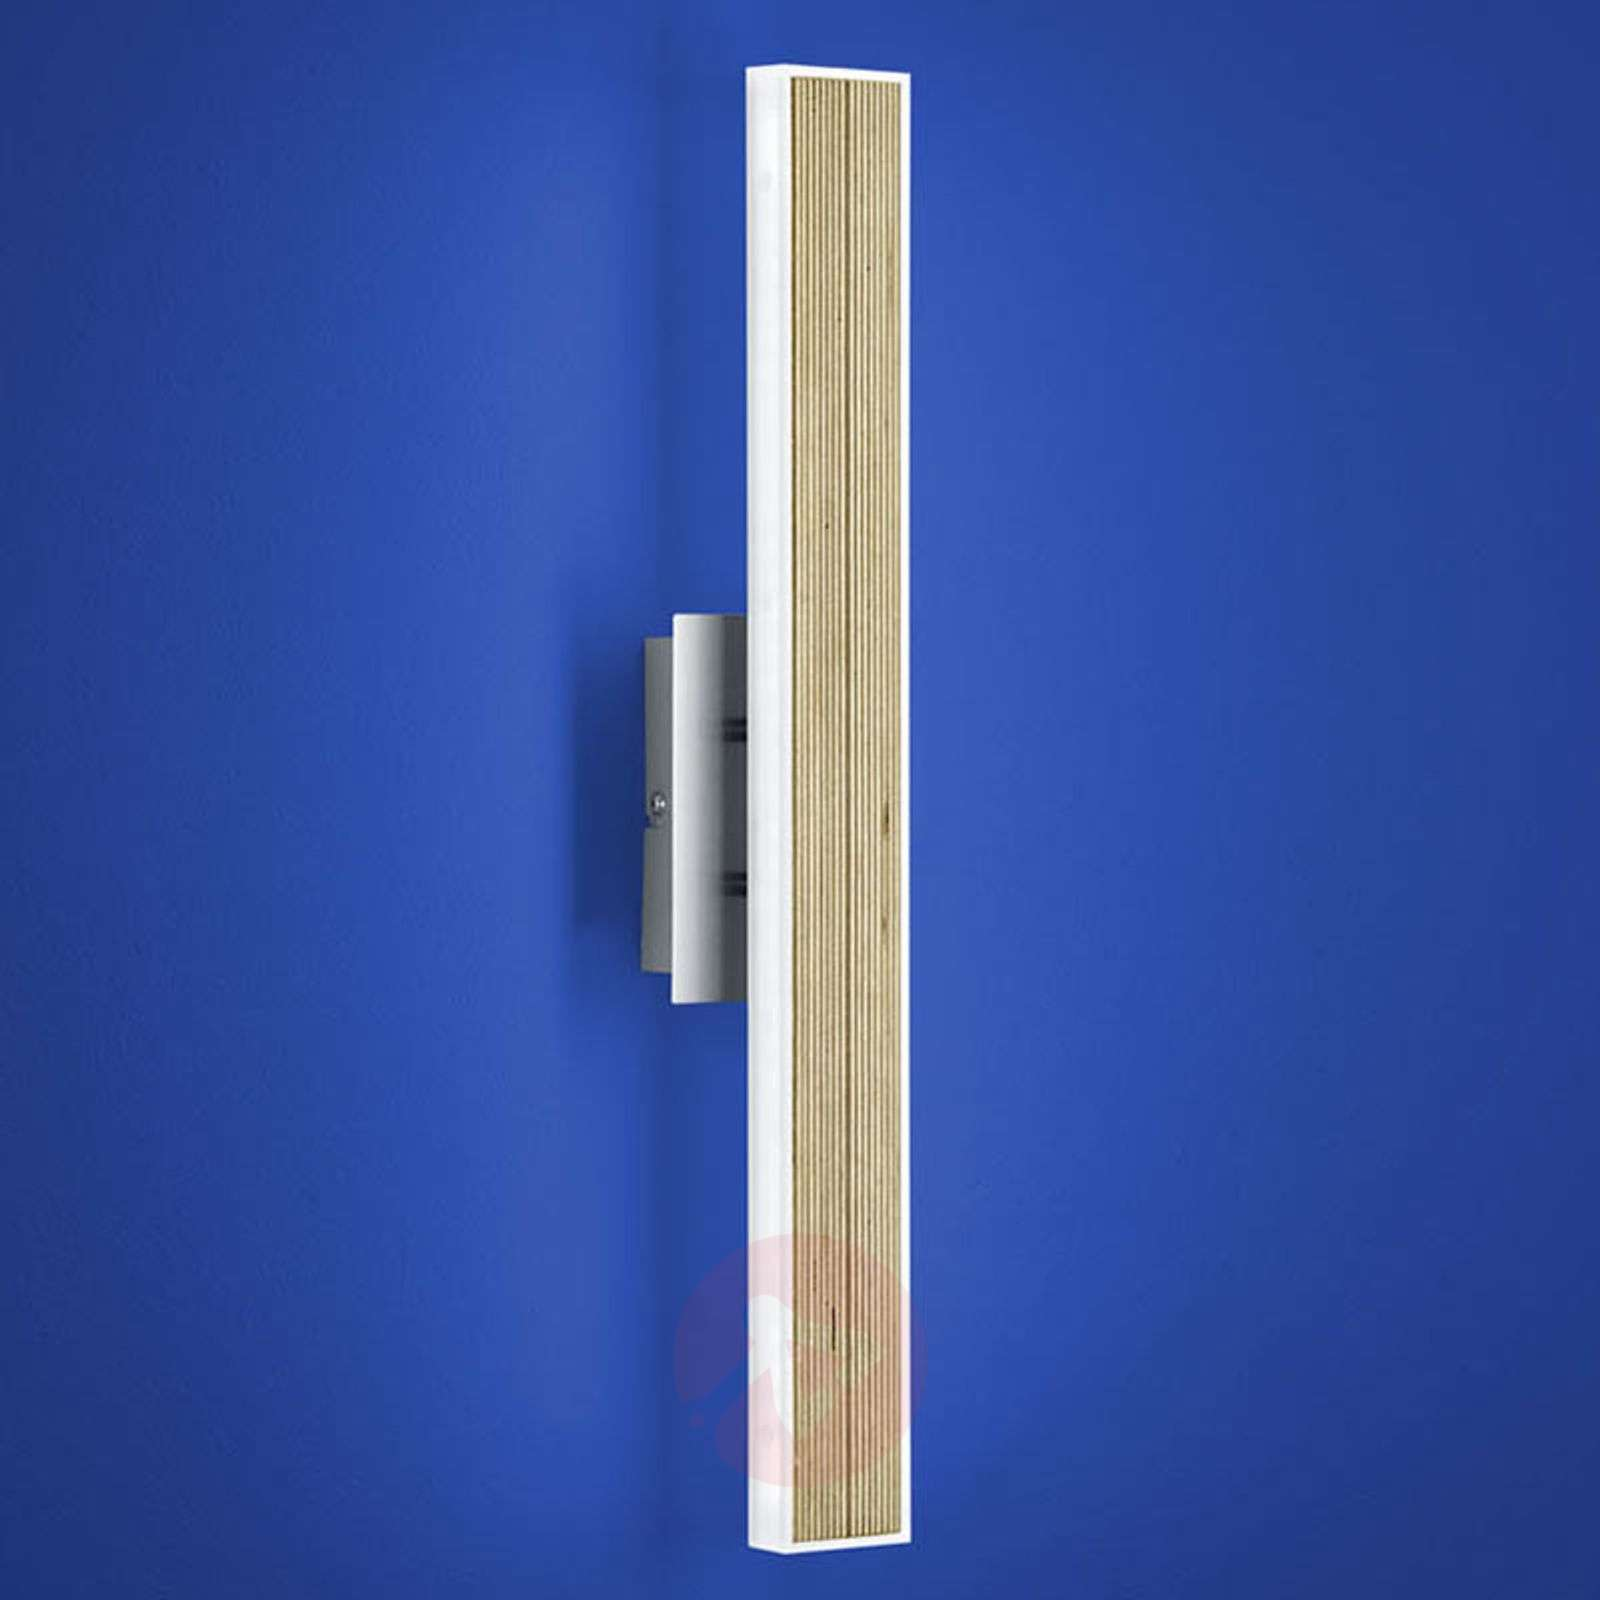 Lámpara de pared LED Kiruna Wood con interruptor-1554073-01